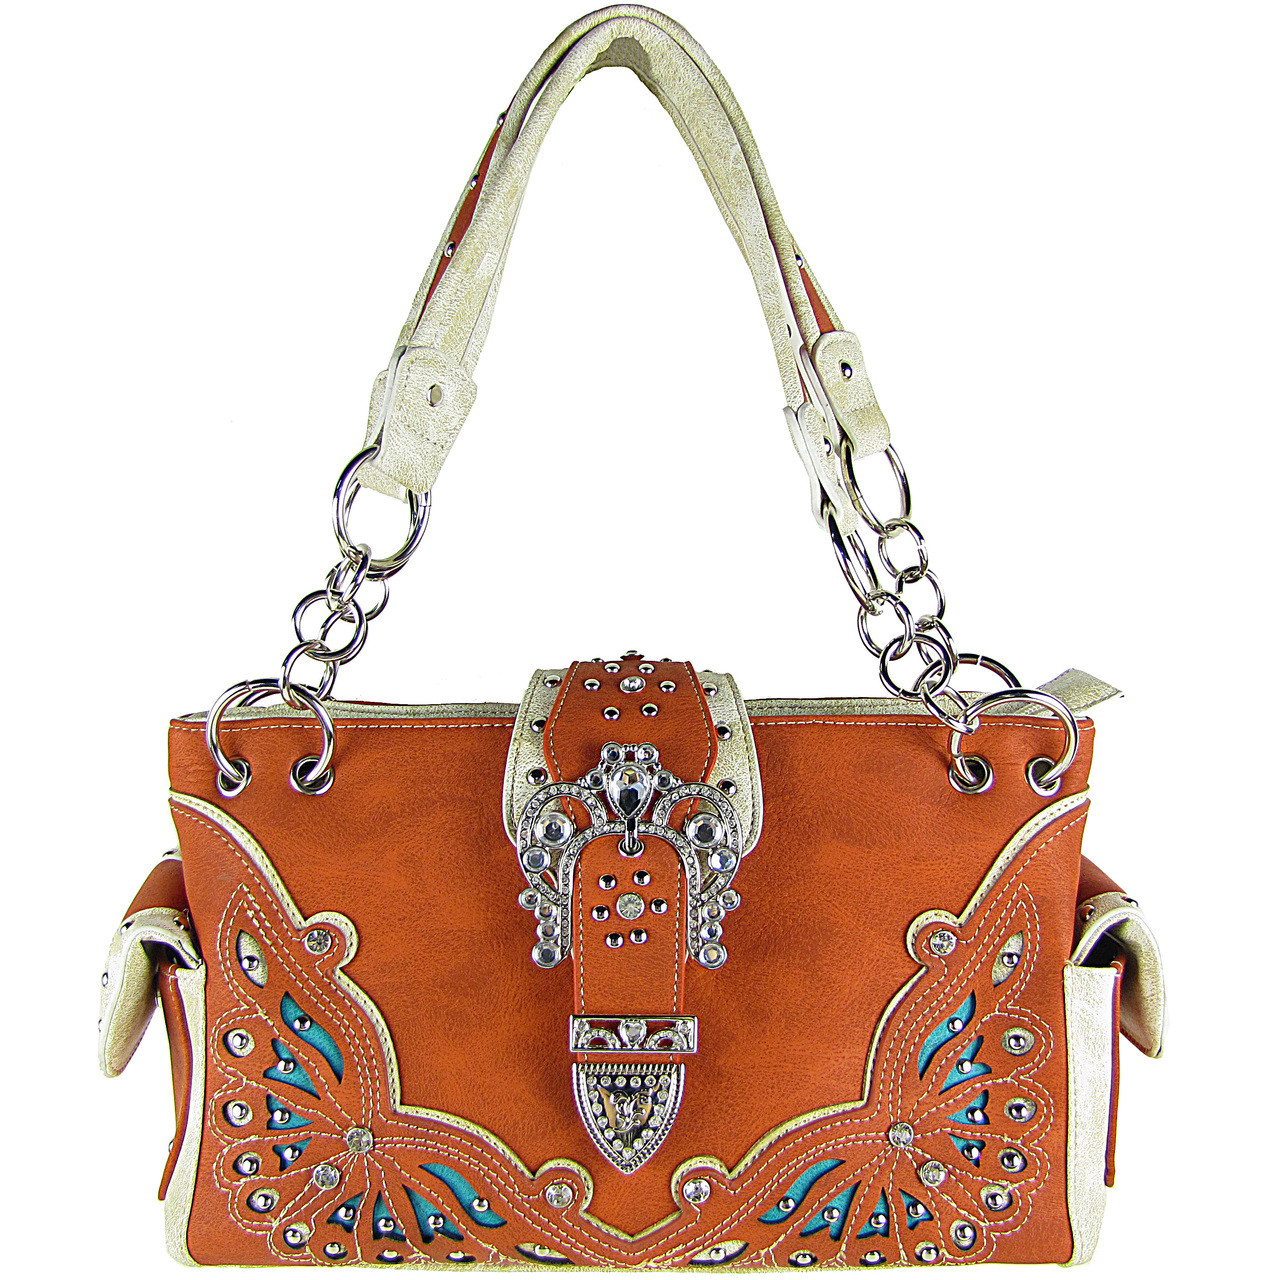 ORANGE RHINESTONE BUCKLE LOOK SHOULDER HANDBAG HB1-39W70ORG